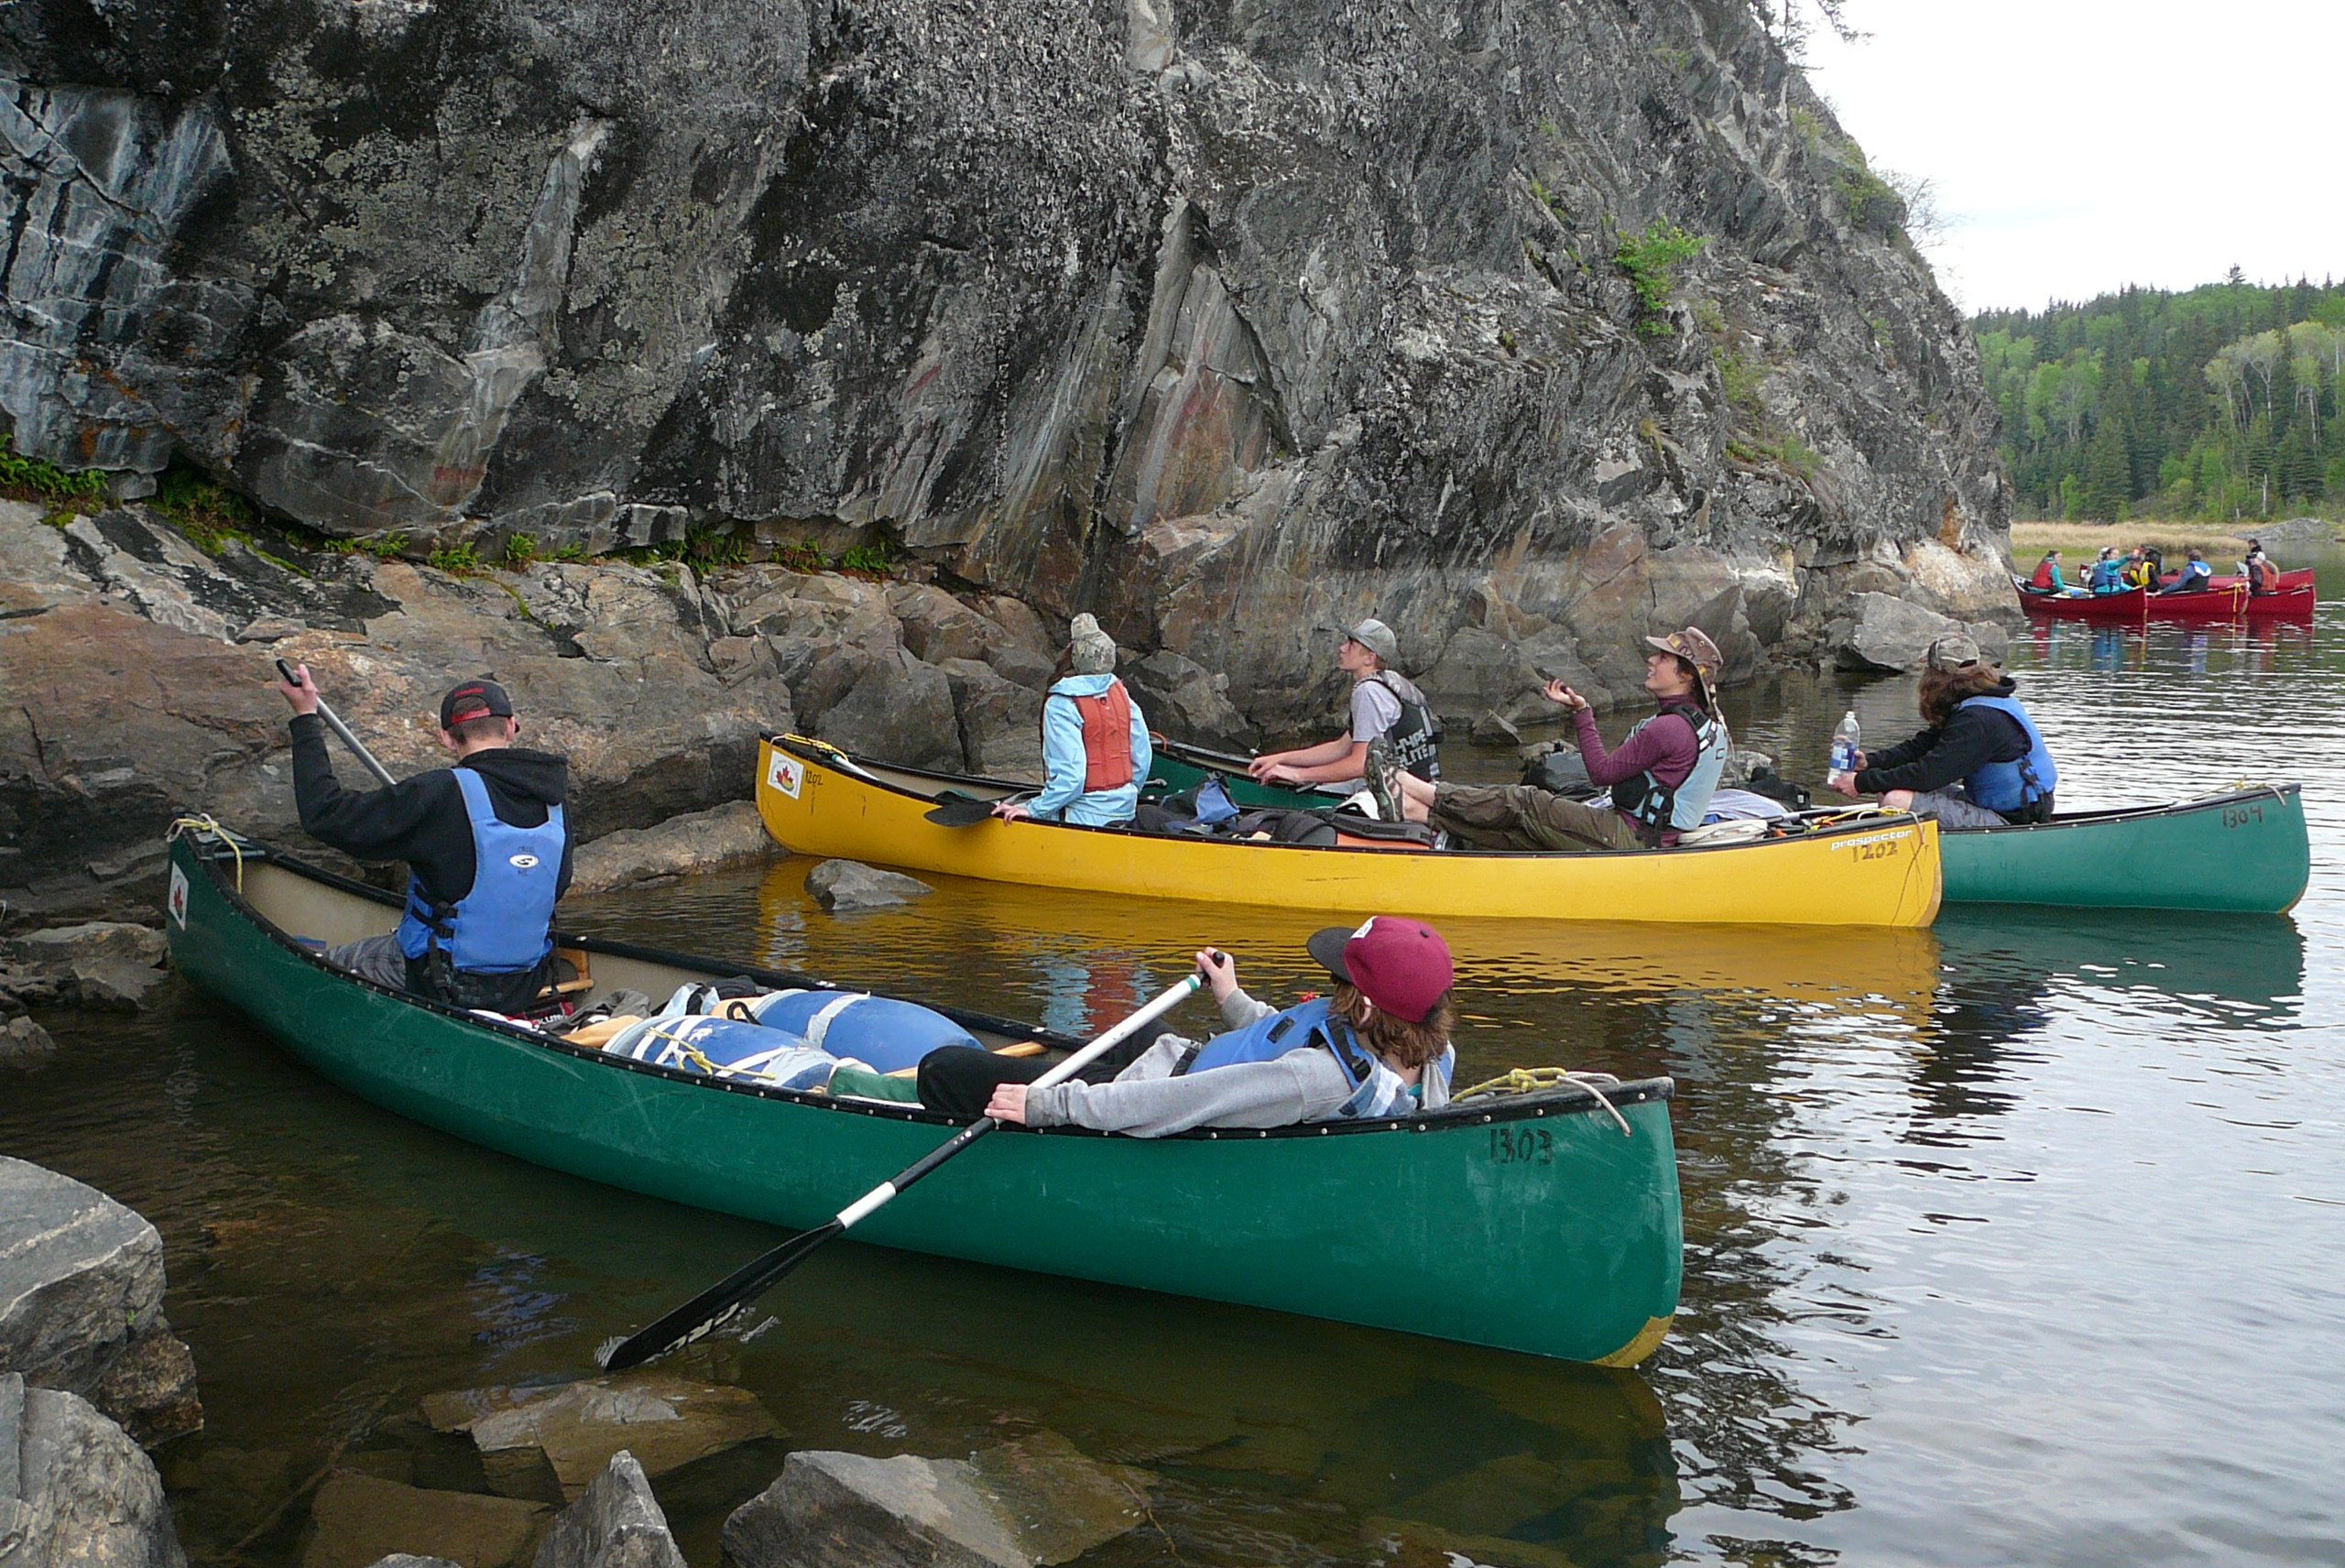 Bruno Central School Wilderness Canoe Trip 2016 - Image 2